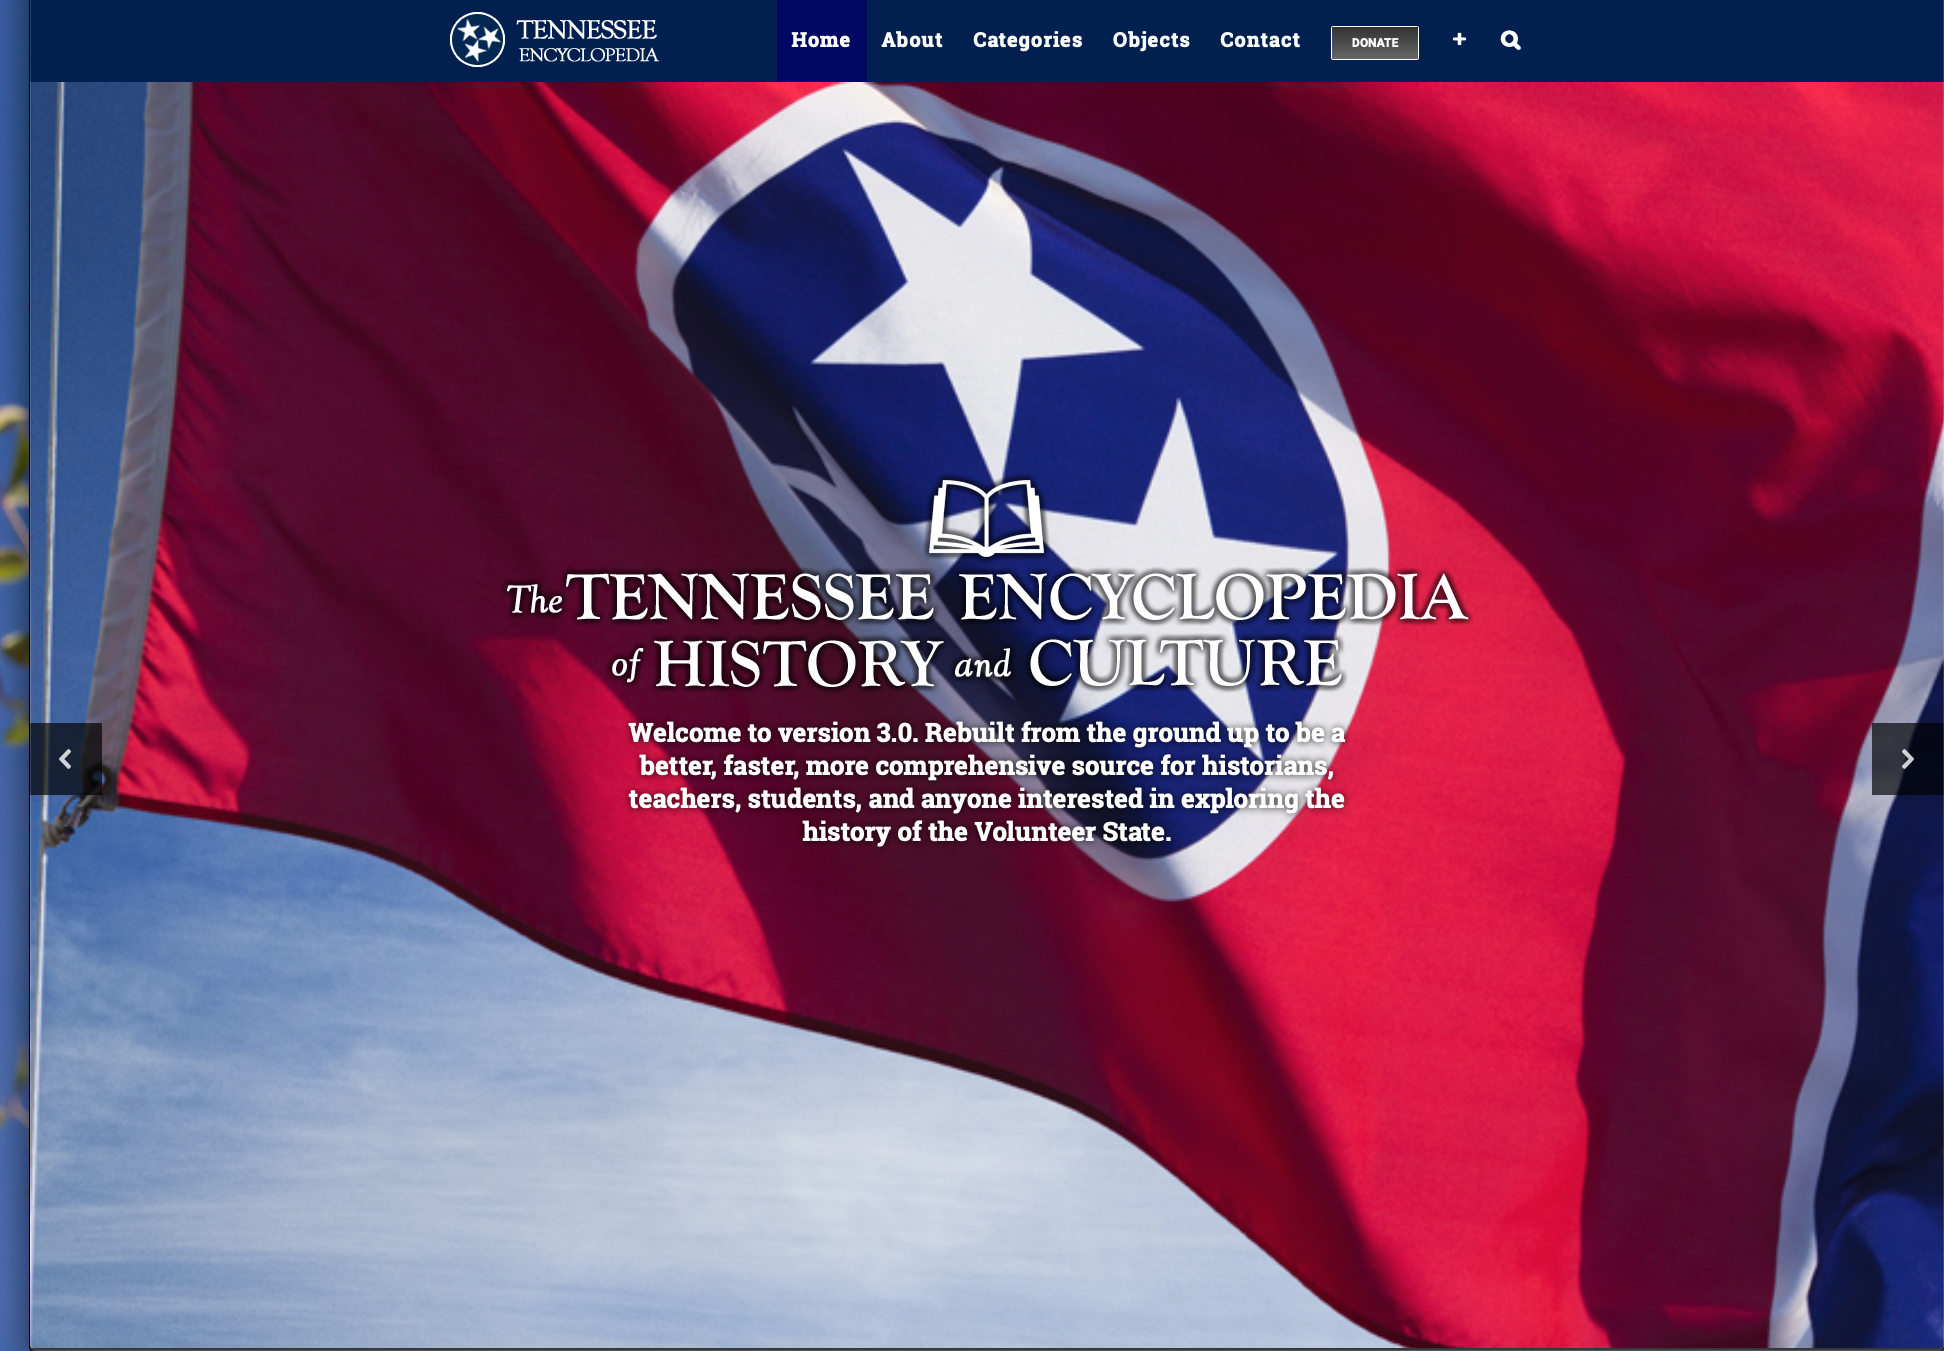 Tennessee Encyclopedia of History and Culture - I wrote encyclopedia articles interpreting various facets of Tennessee music history.